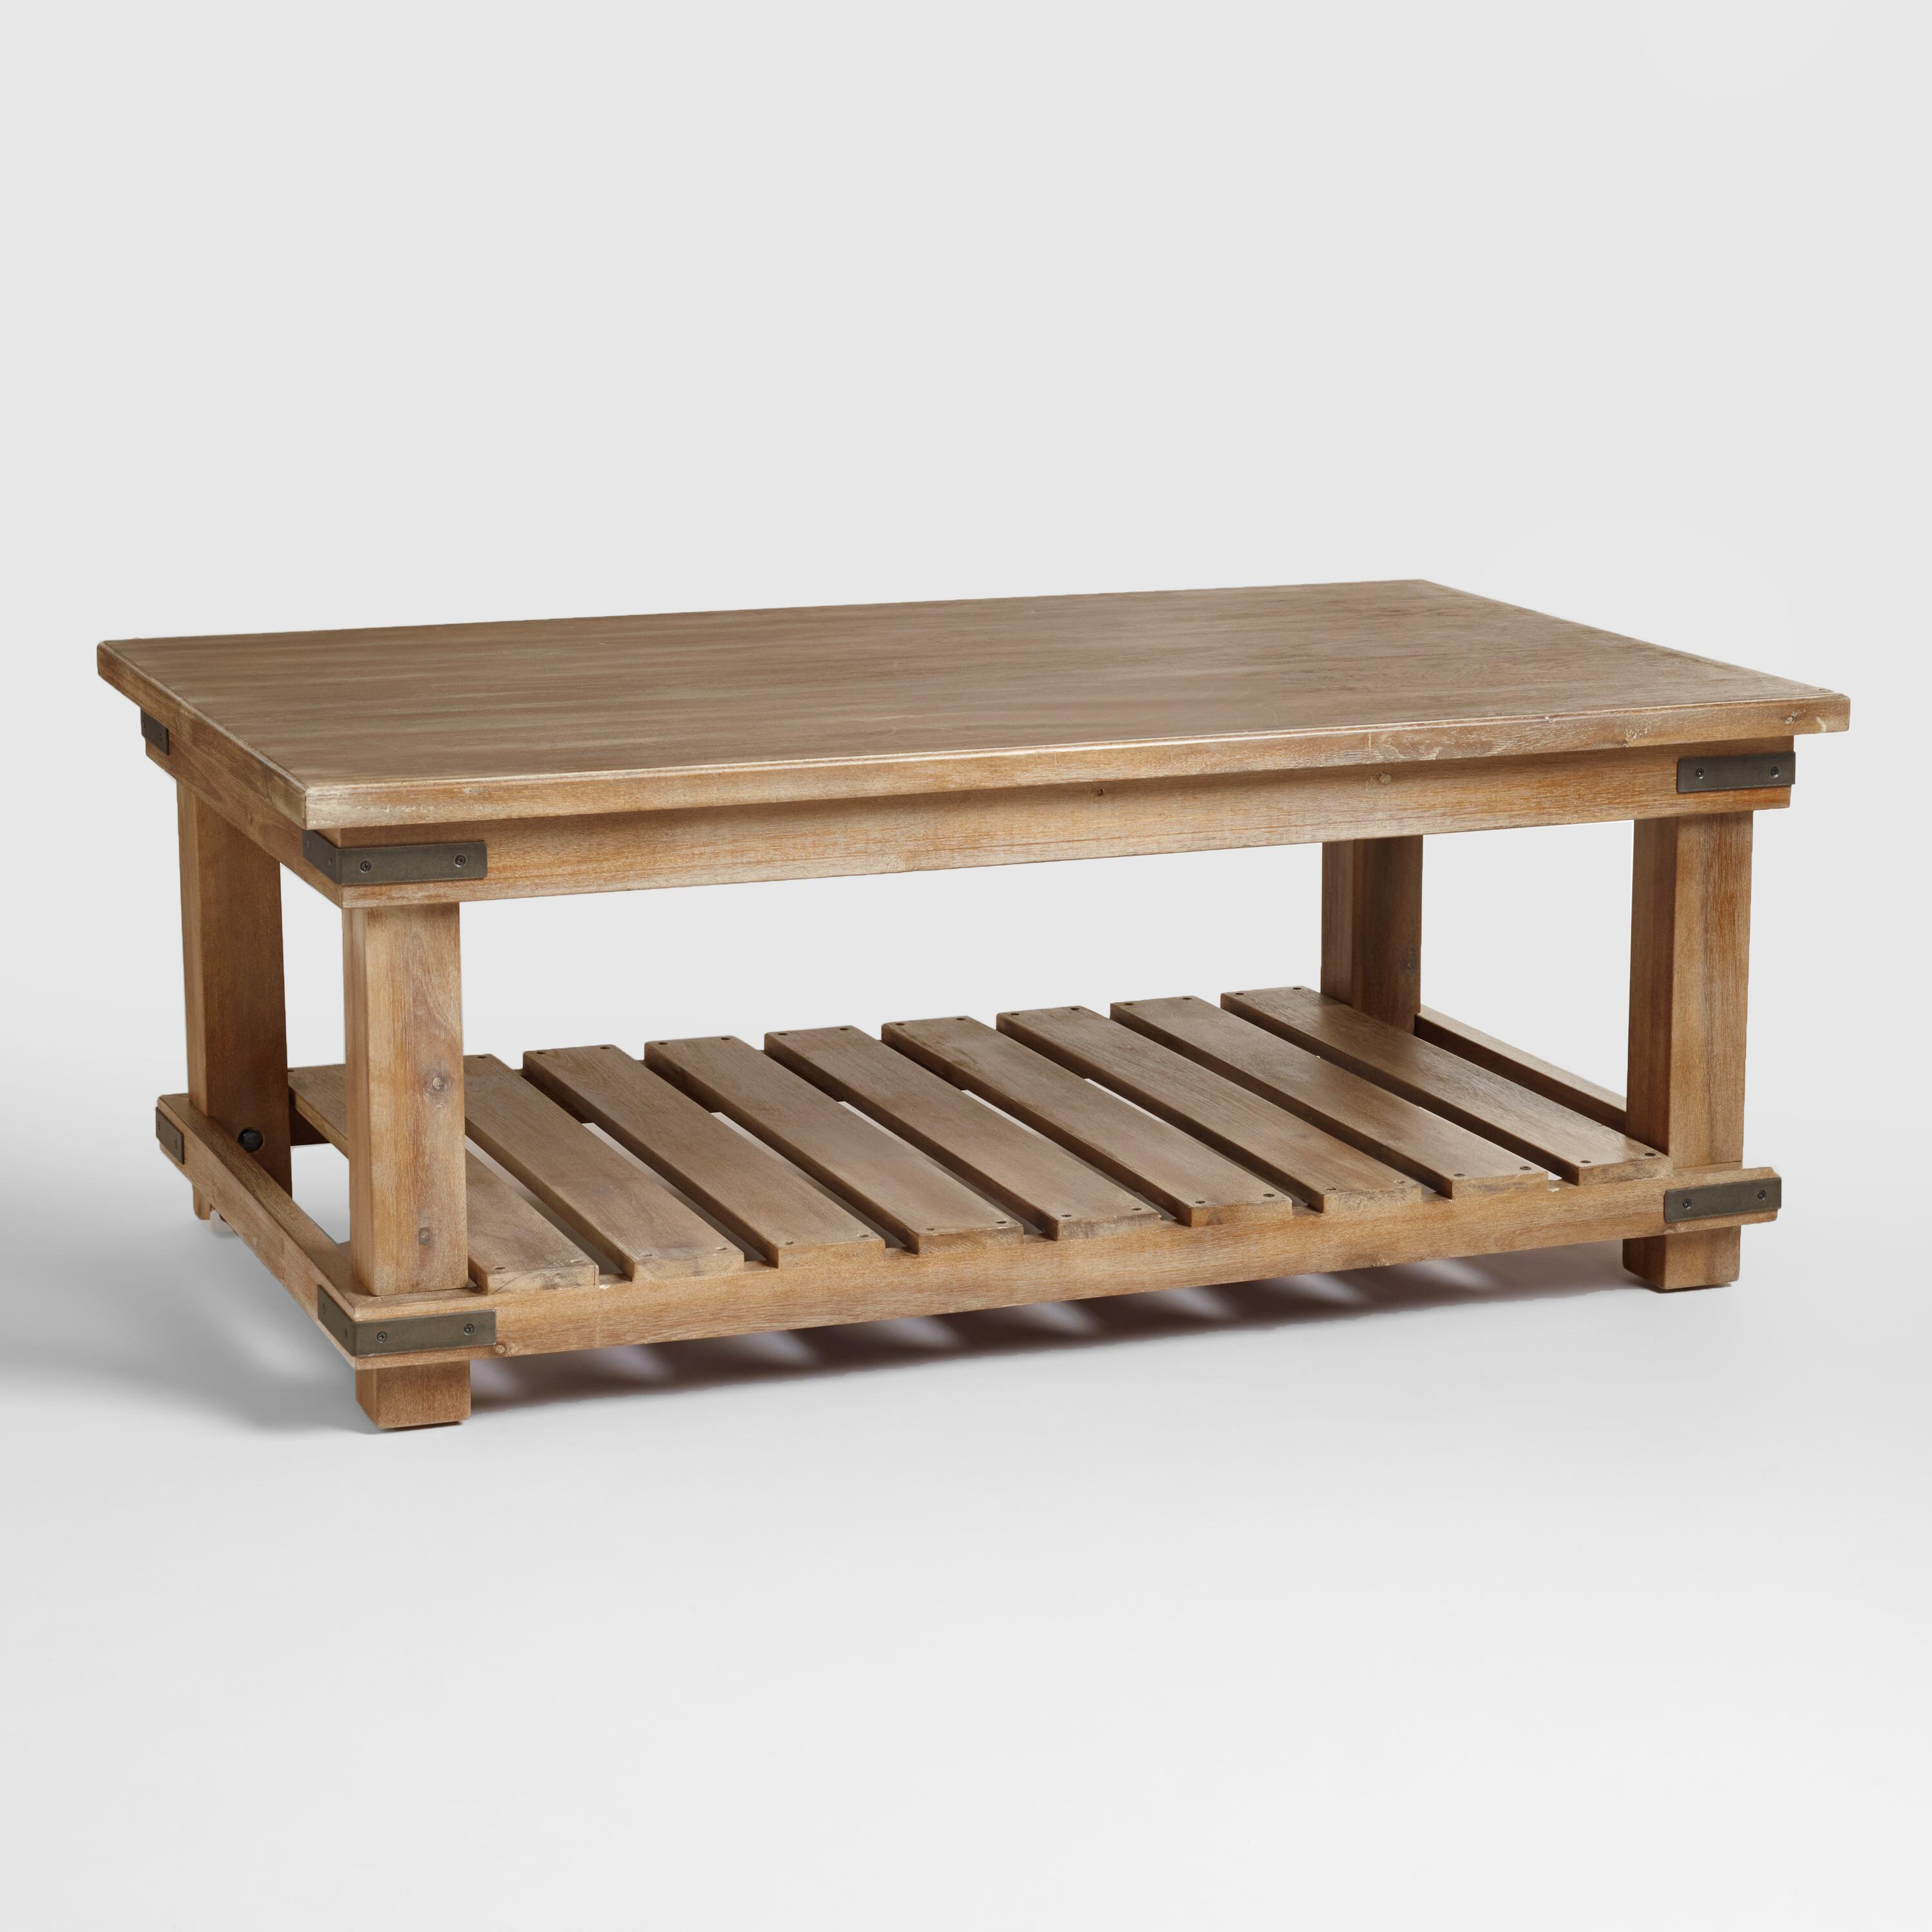 modern wooden coffee table designs photo - 10